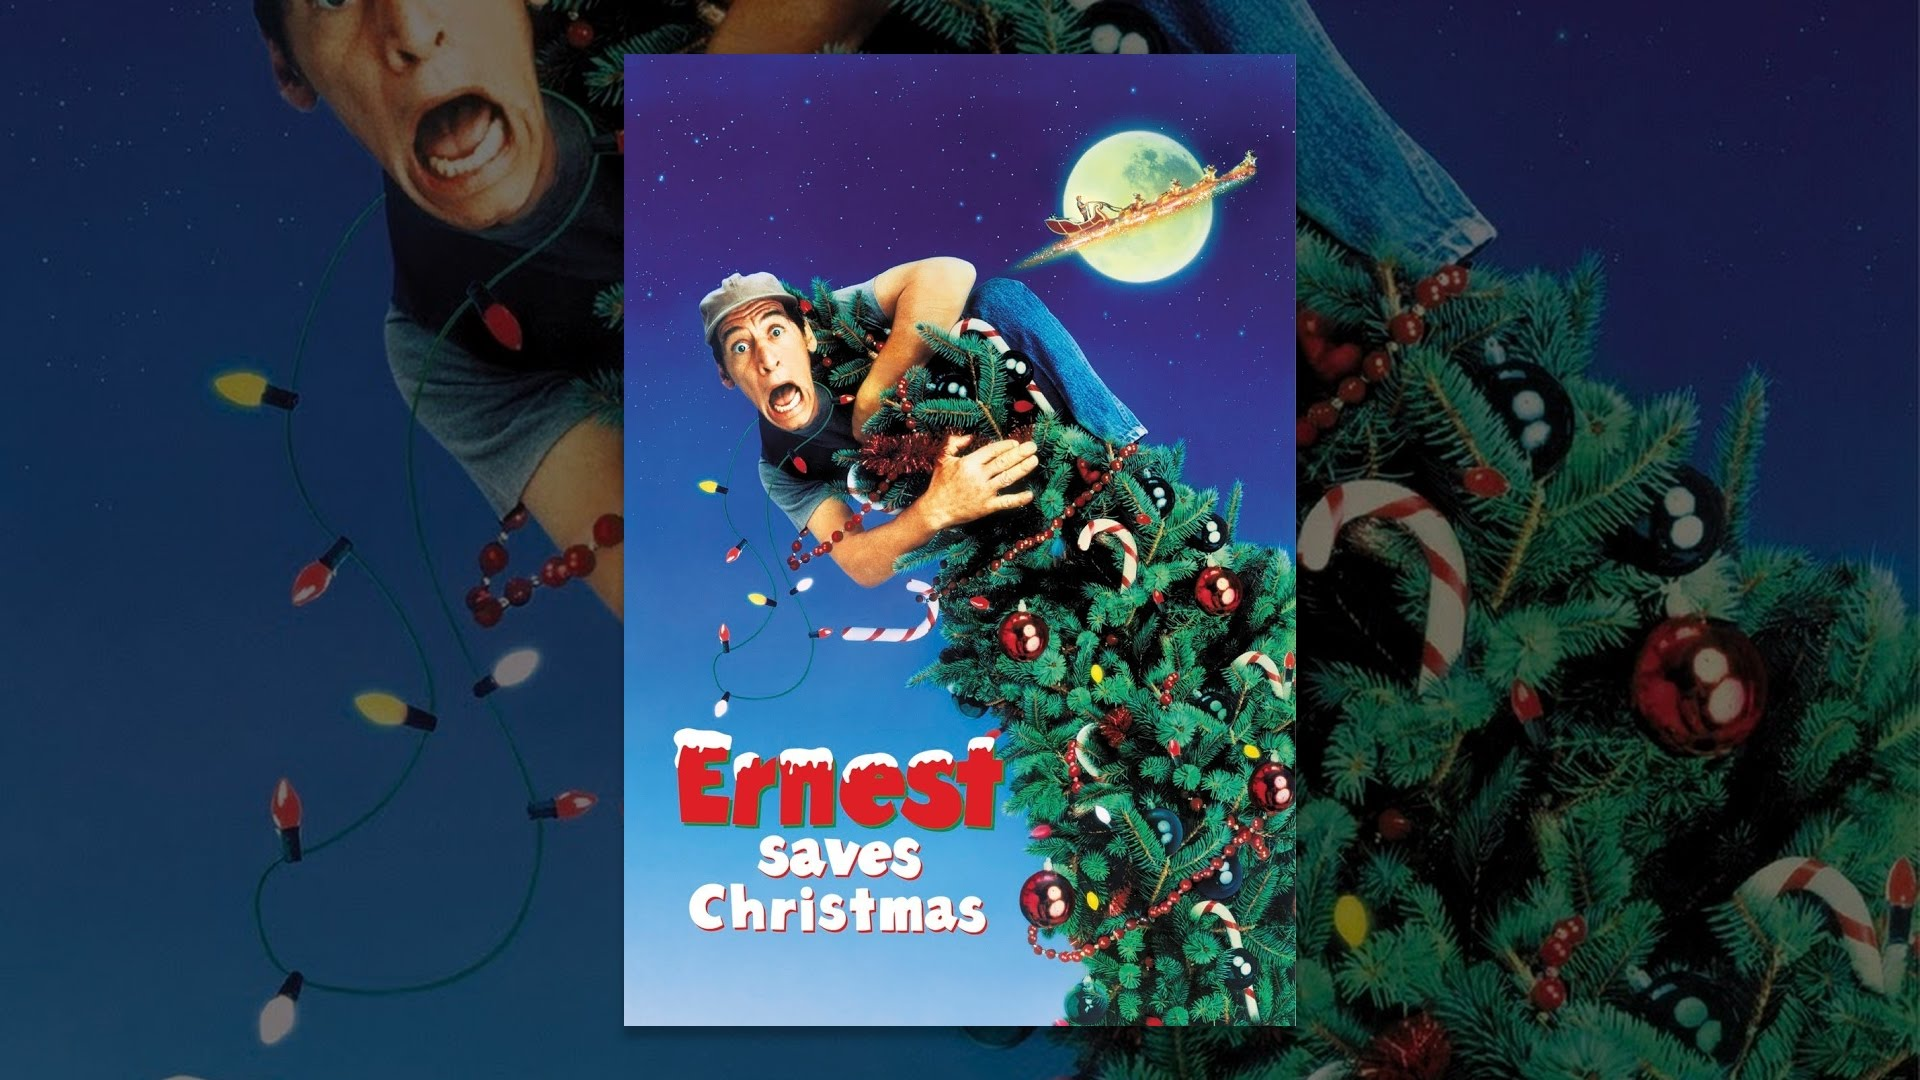 Ernest Saves Christmas - YouTube